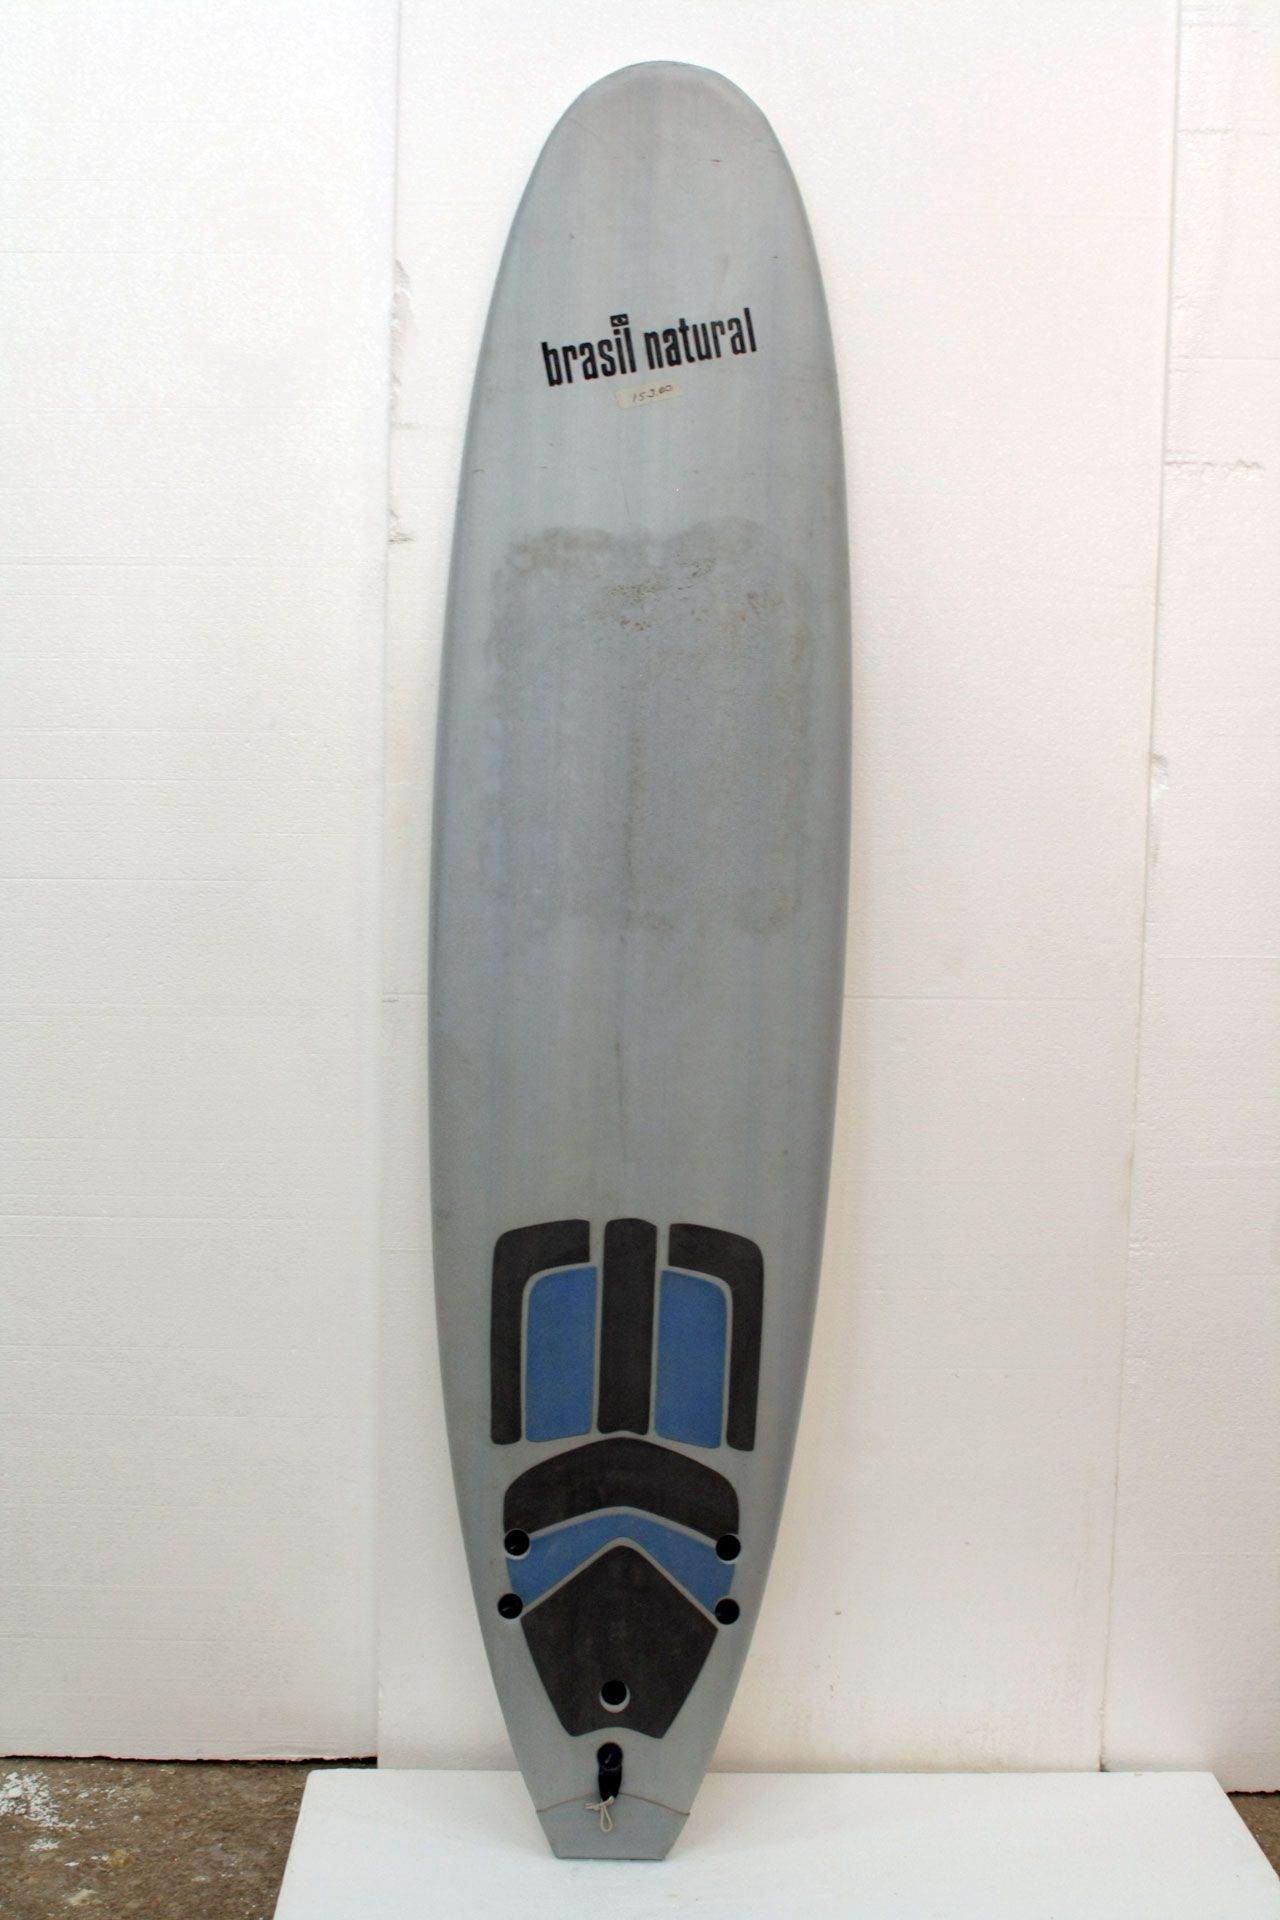 16aa8a8a9 Prancha de surf fun board 7.6 Usada + kit surf - Brasil Natural - Brasil  Natural ...